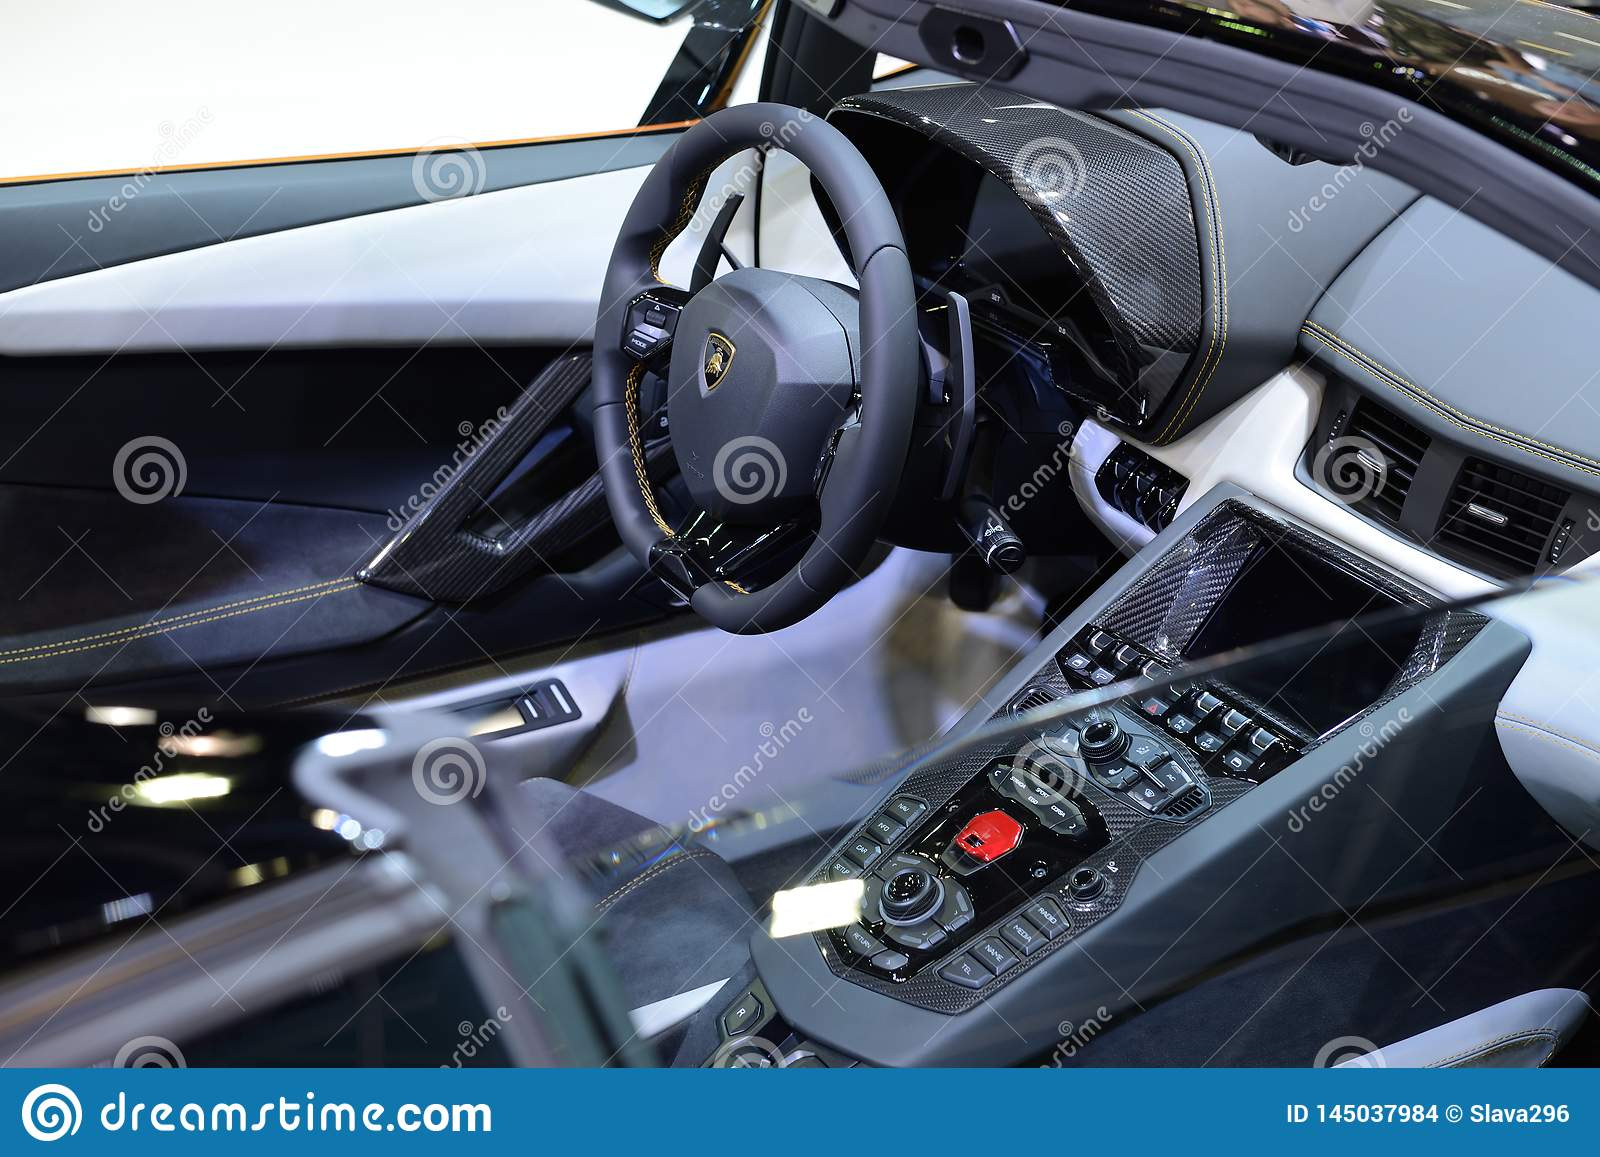 328 Lamborghini Interior Photos Free Royalty Free Stock Photos From Dreamstime